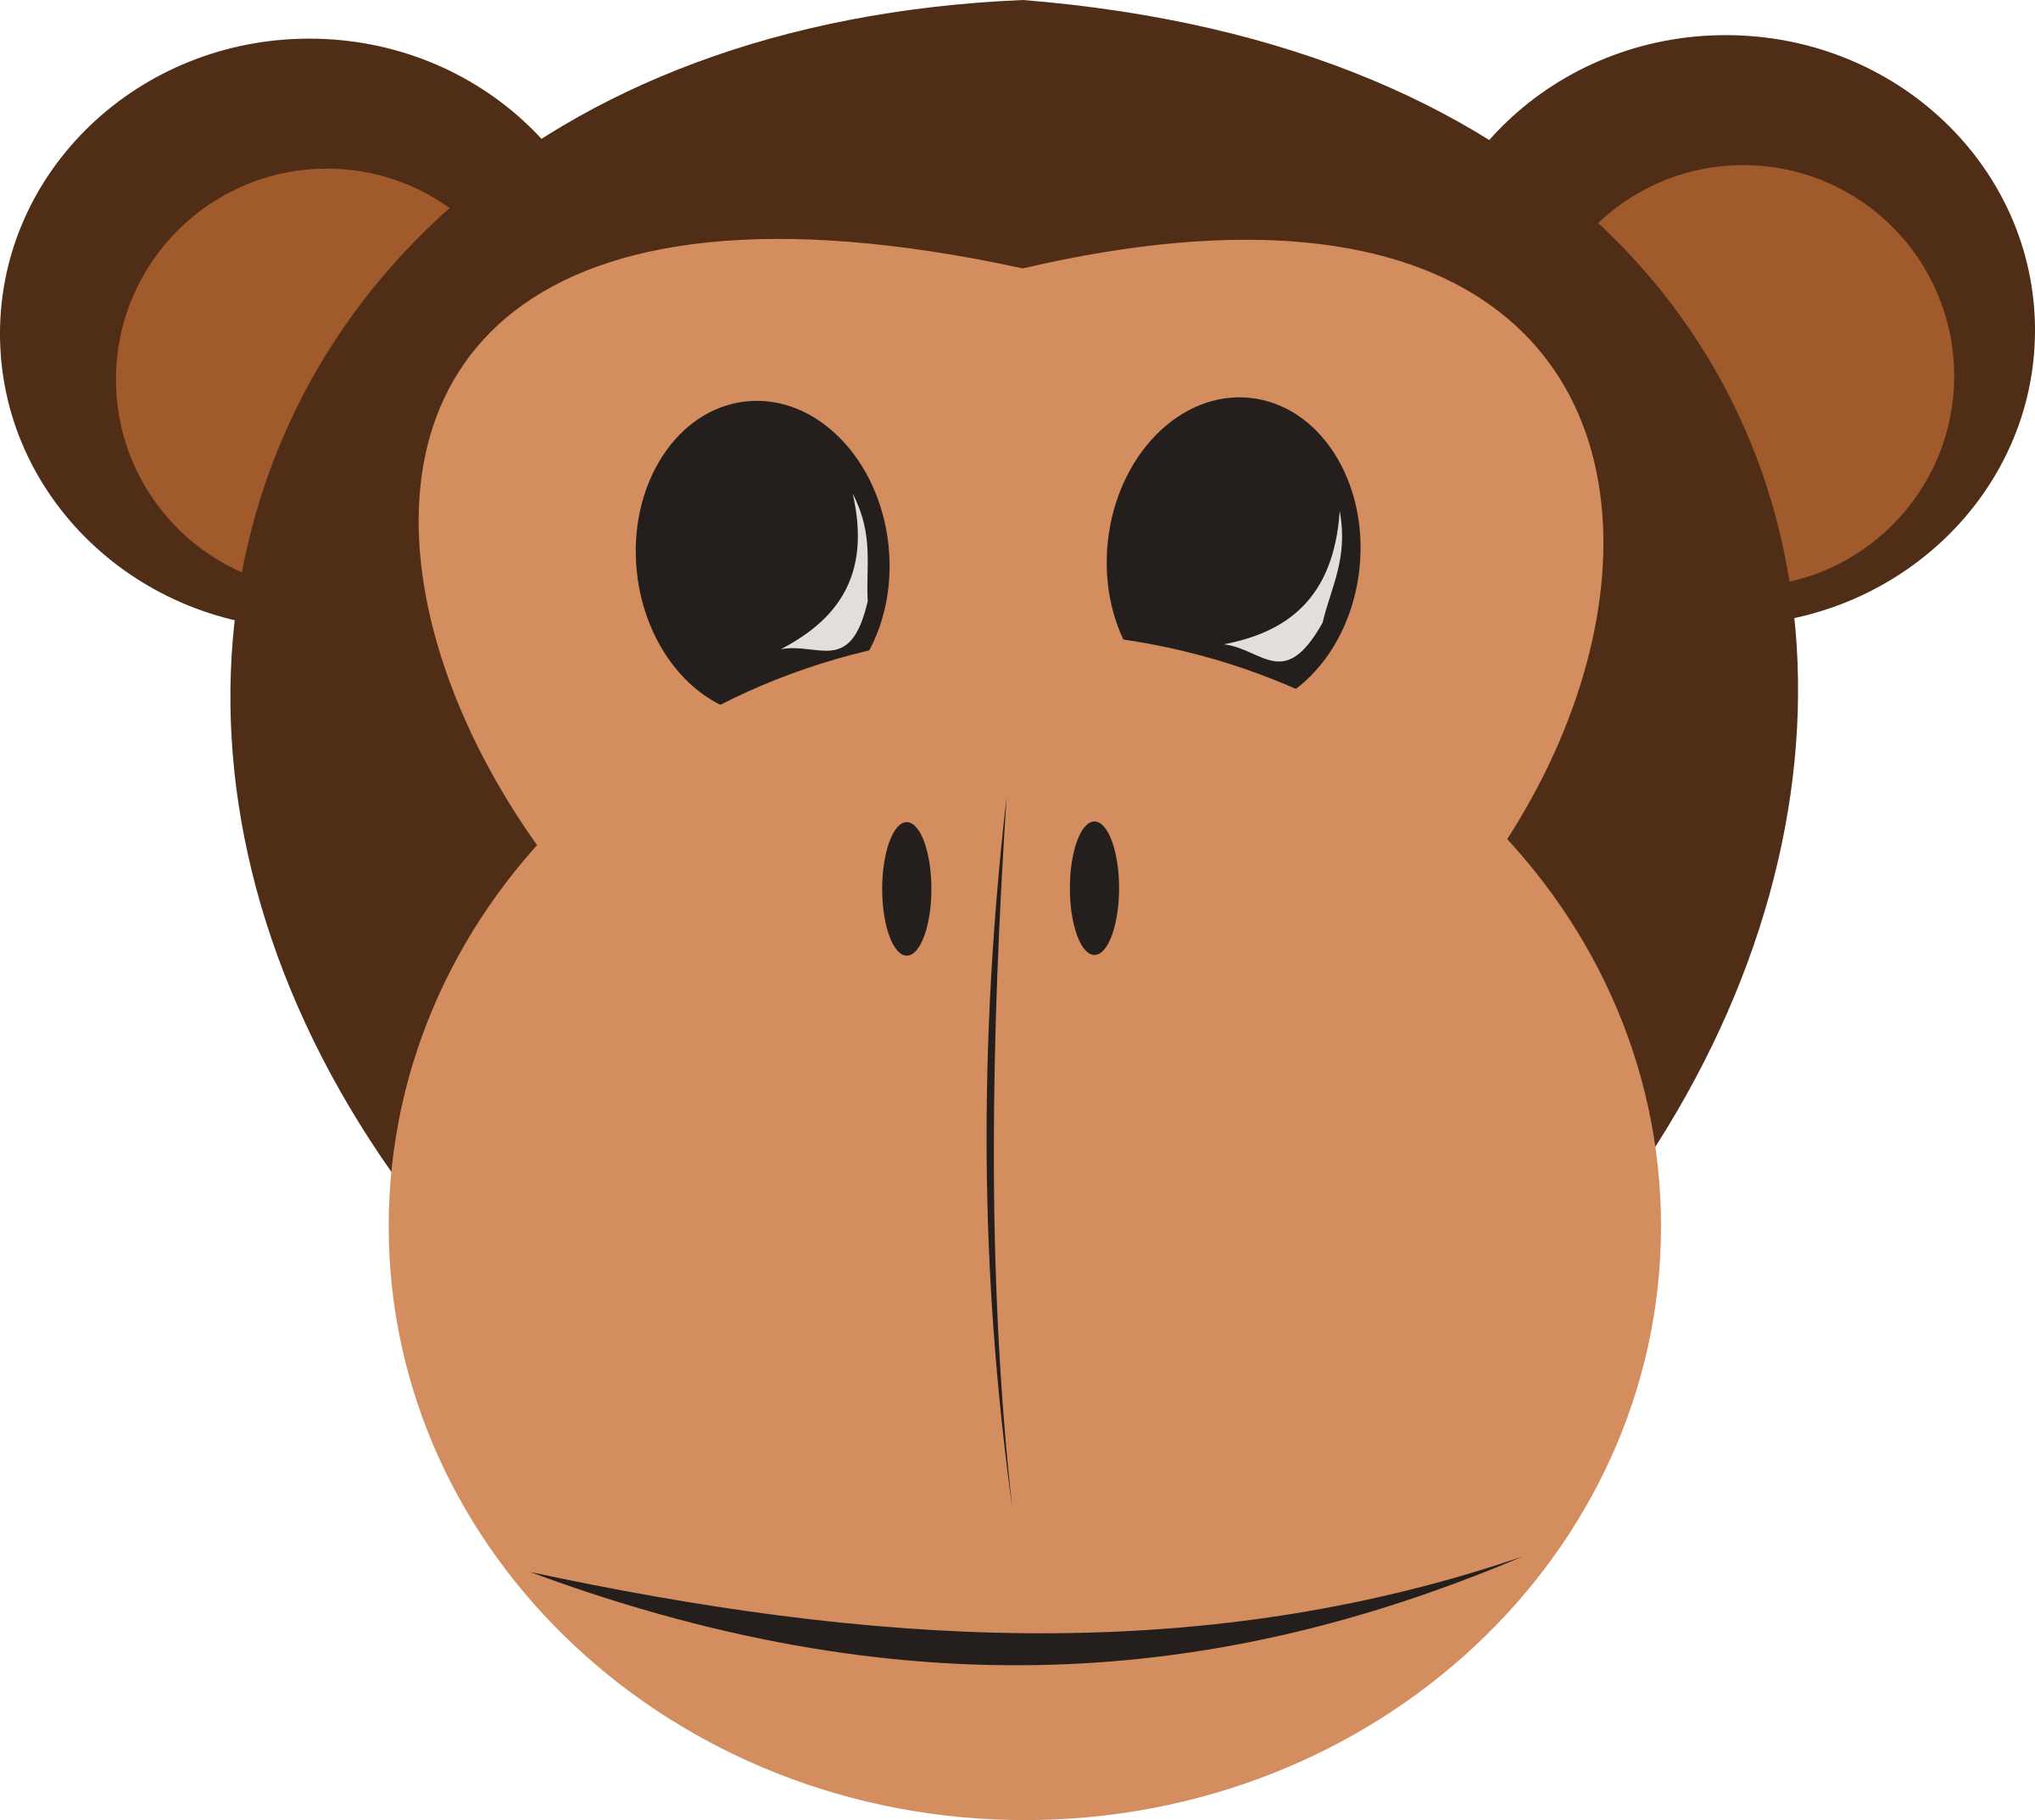 Face icons png free. Monkey clipart capuchin monkey